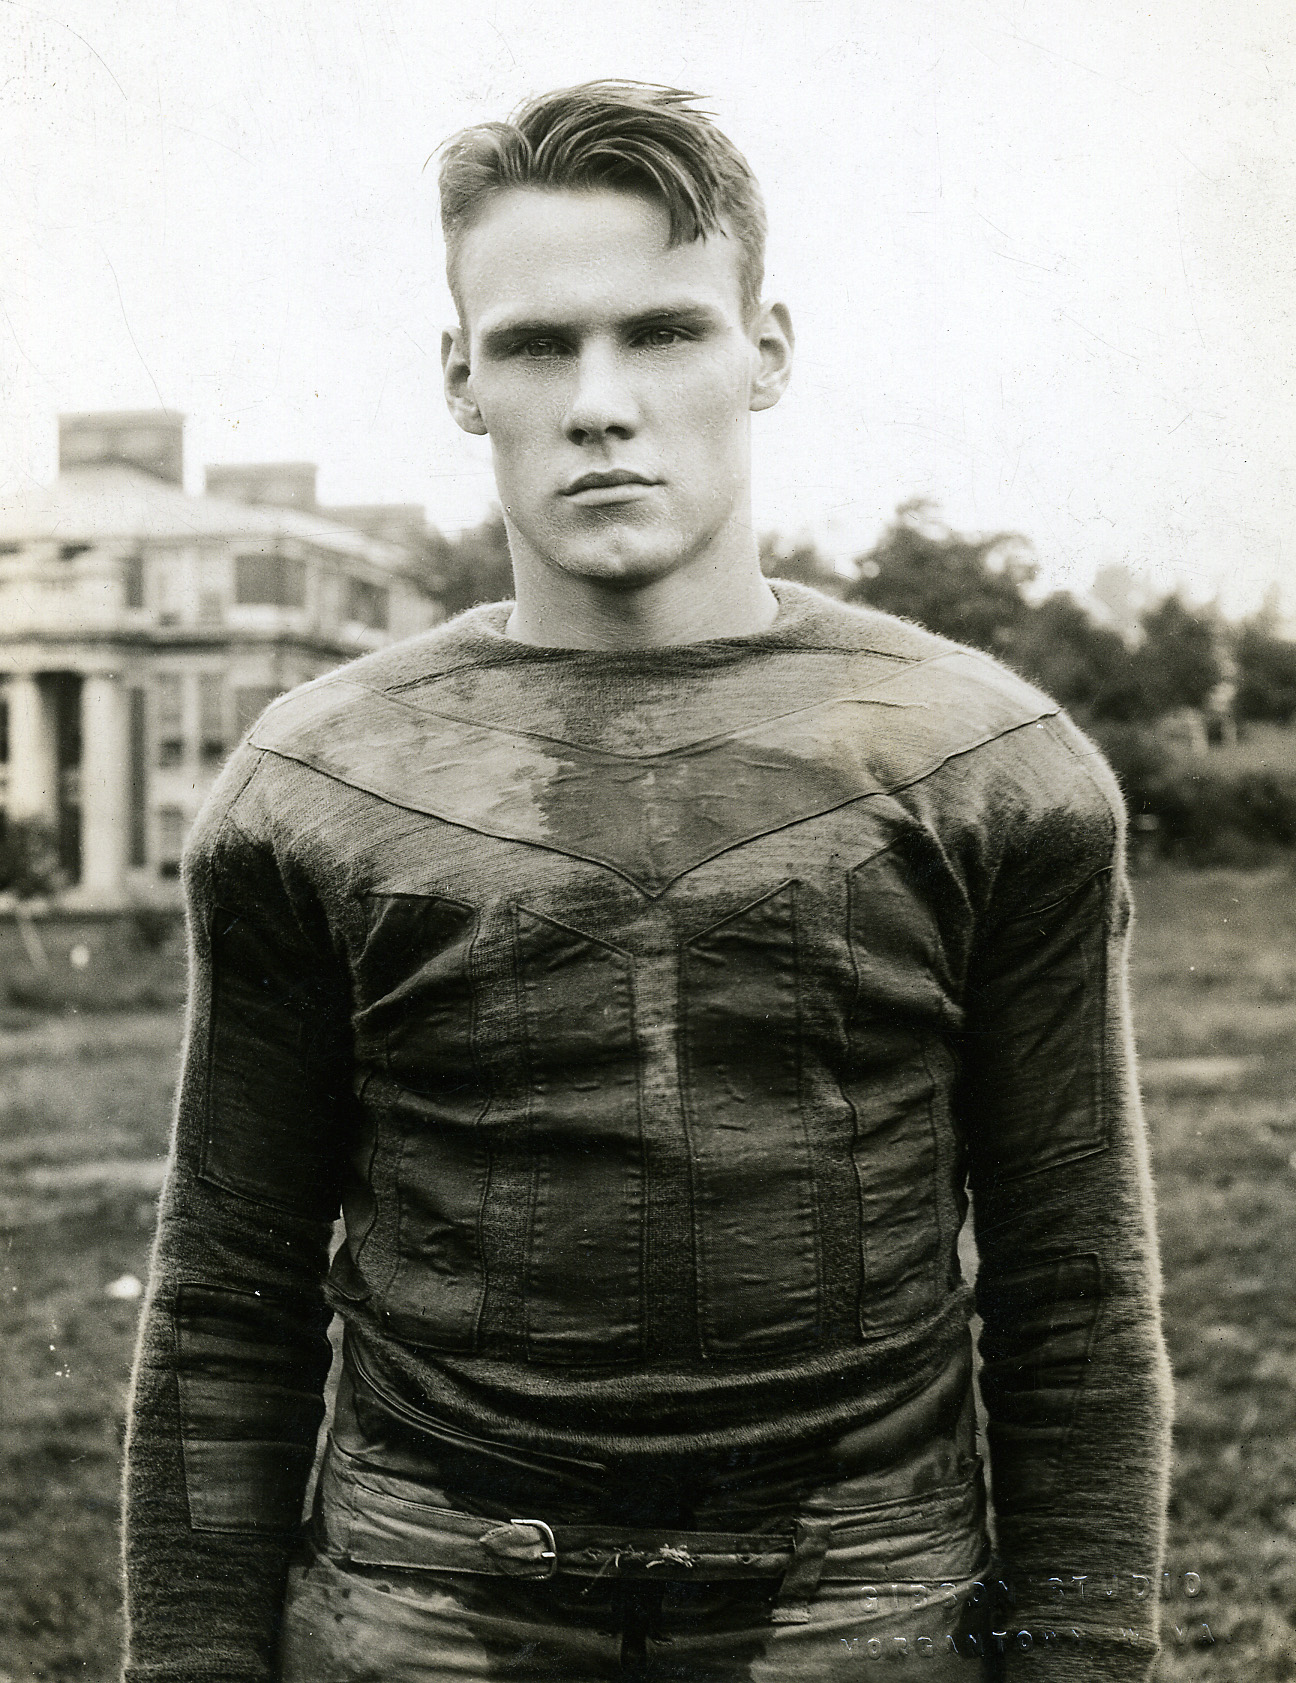 Bill Karr is a member of the West Virginia University Athletic Hall of Fame. He played 6 seasons for the Chicago Bears during the 1930s.